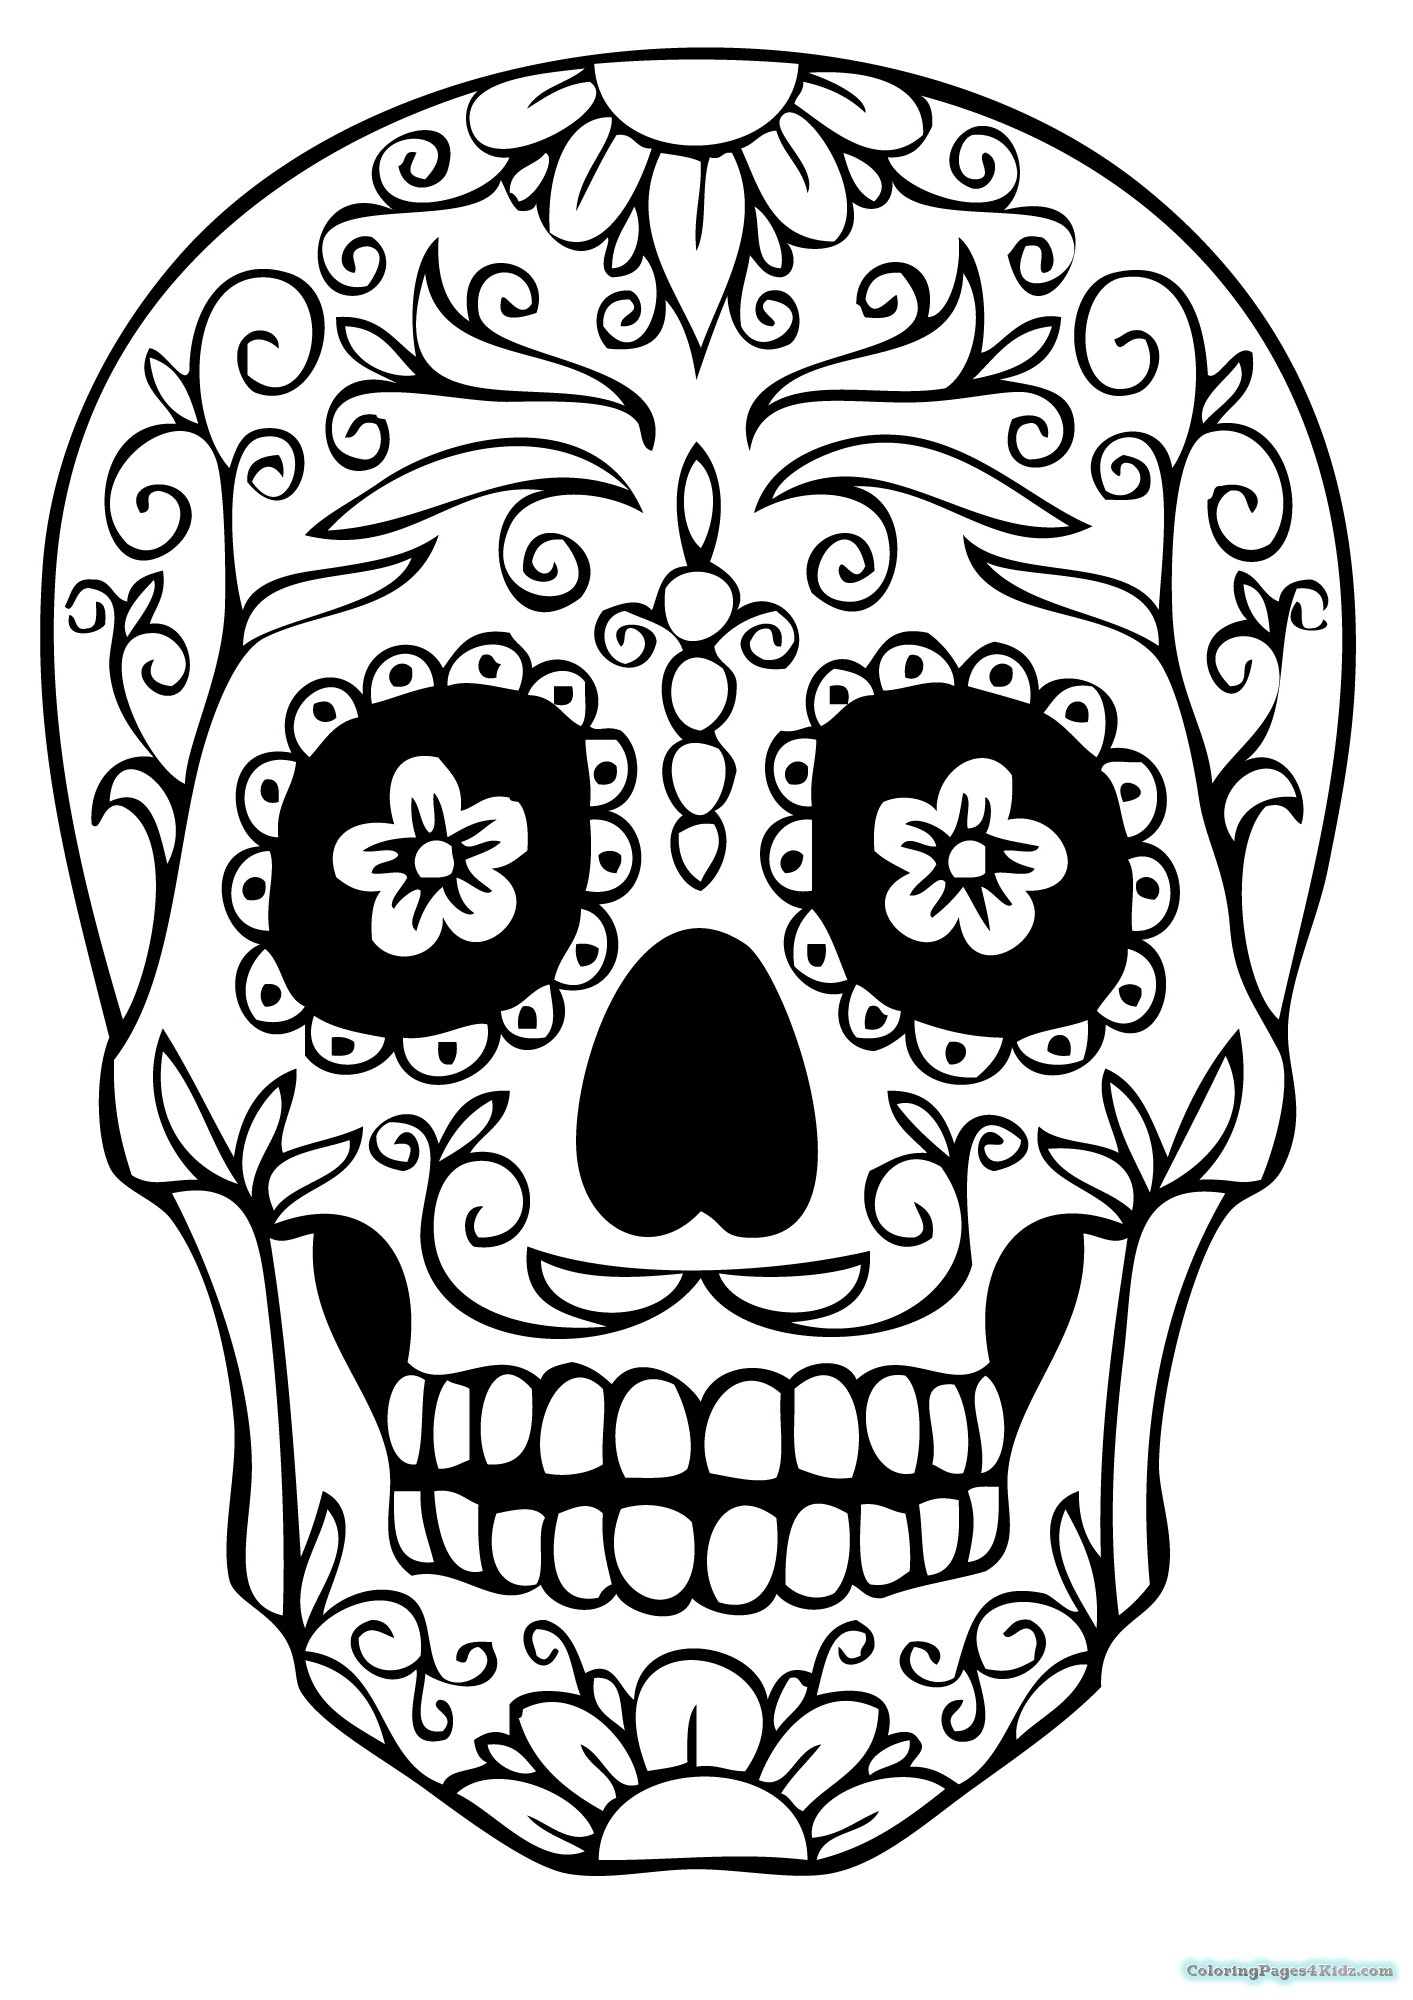 girl skull coloring pages amelia day of the dead dottie gleason skull coloring pages coloring girl skull